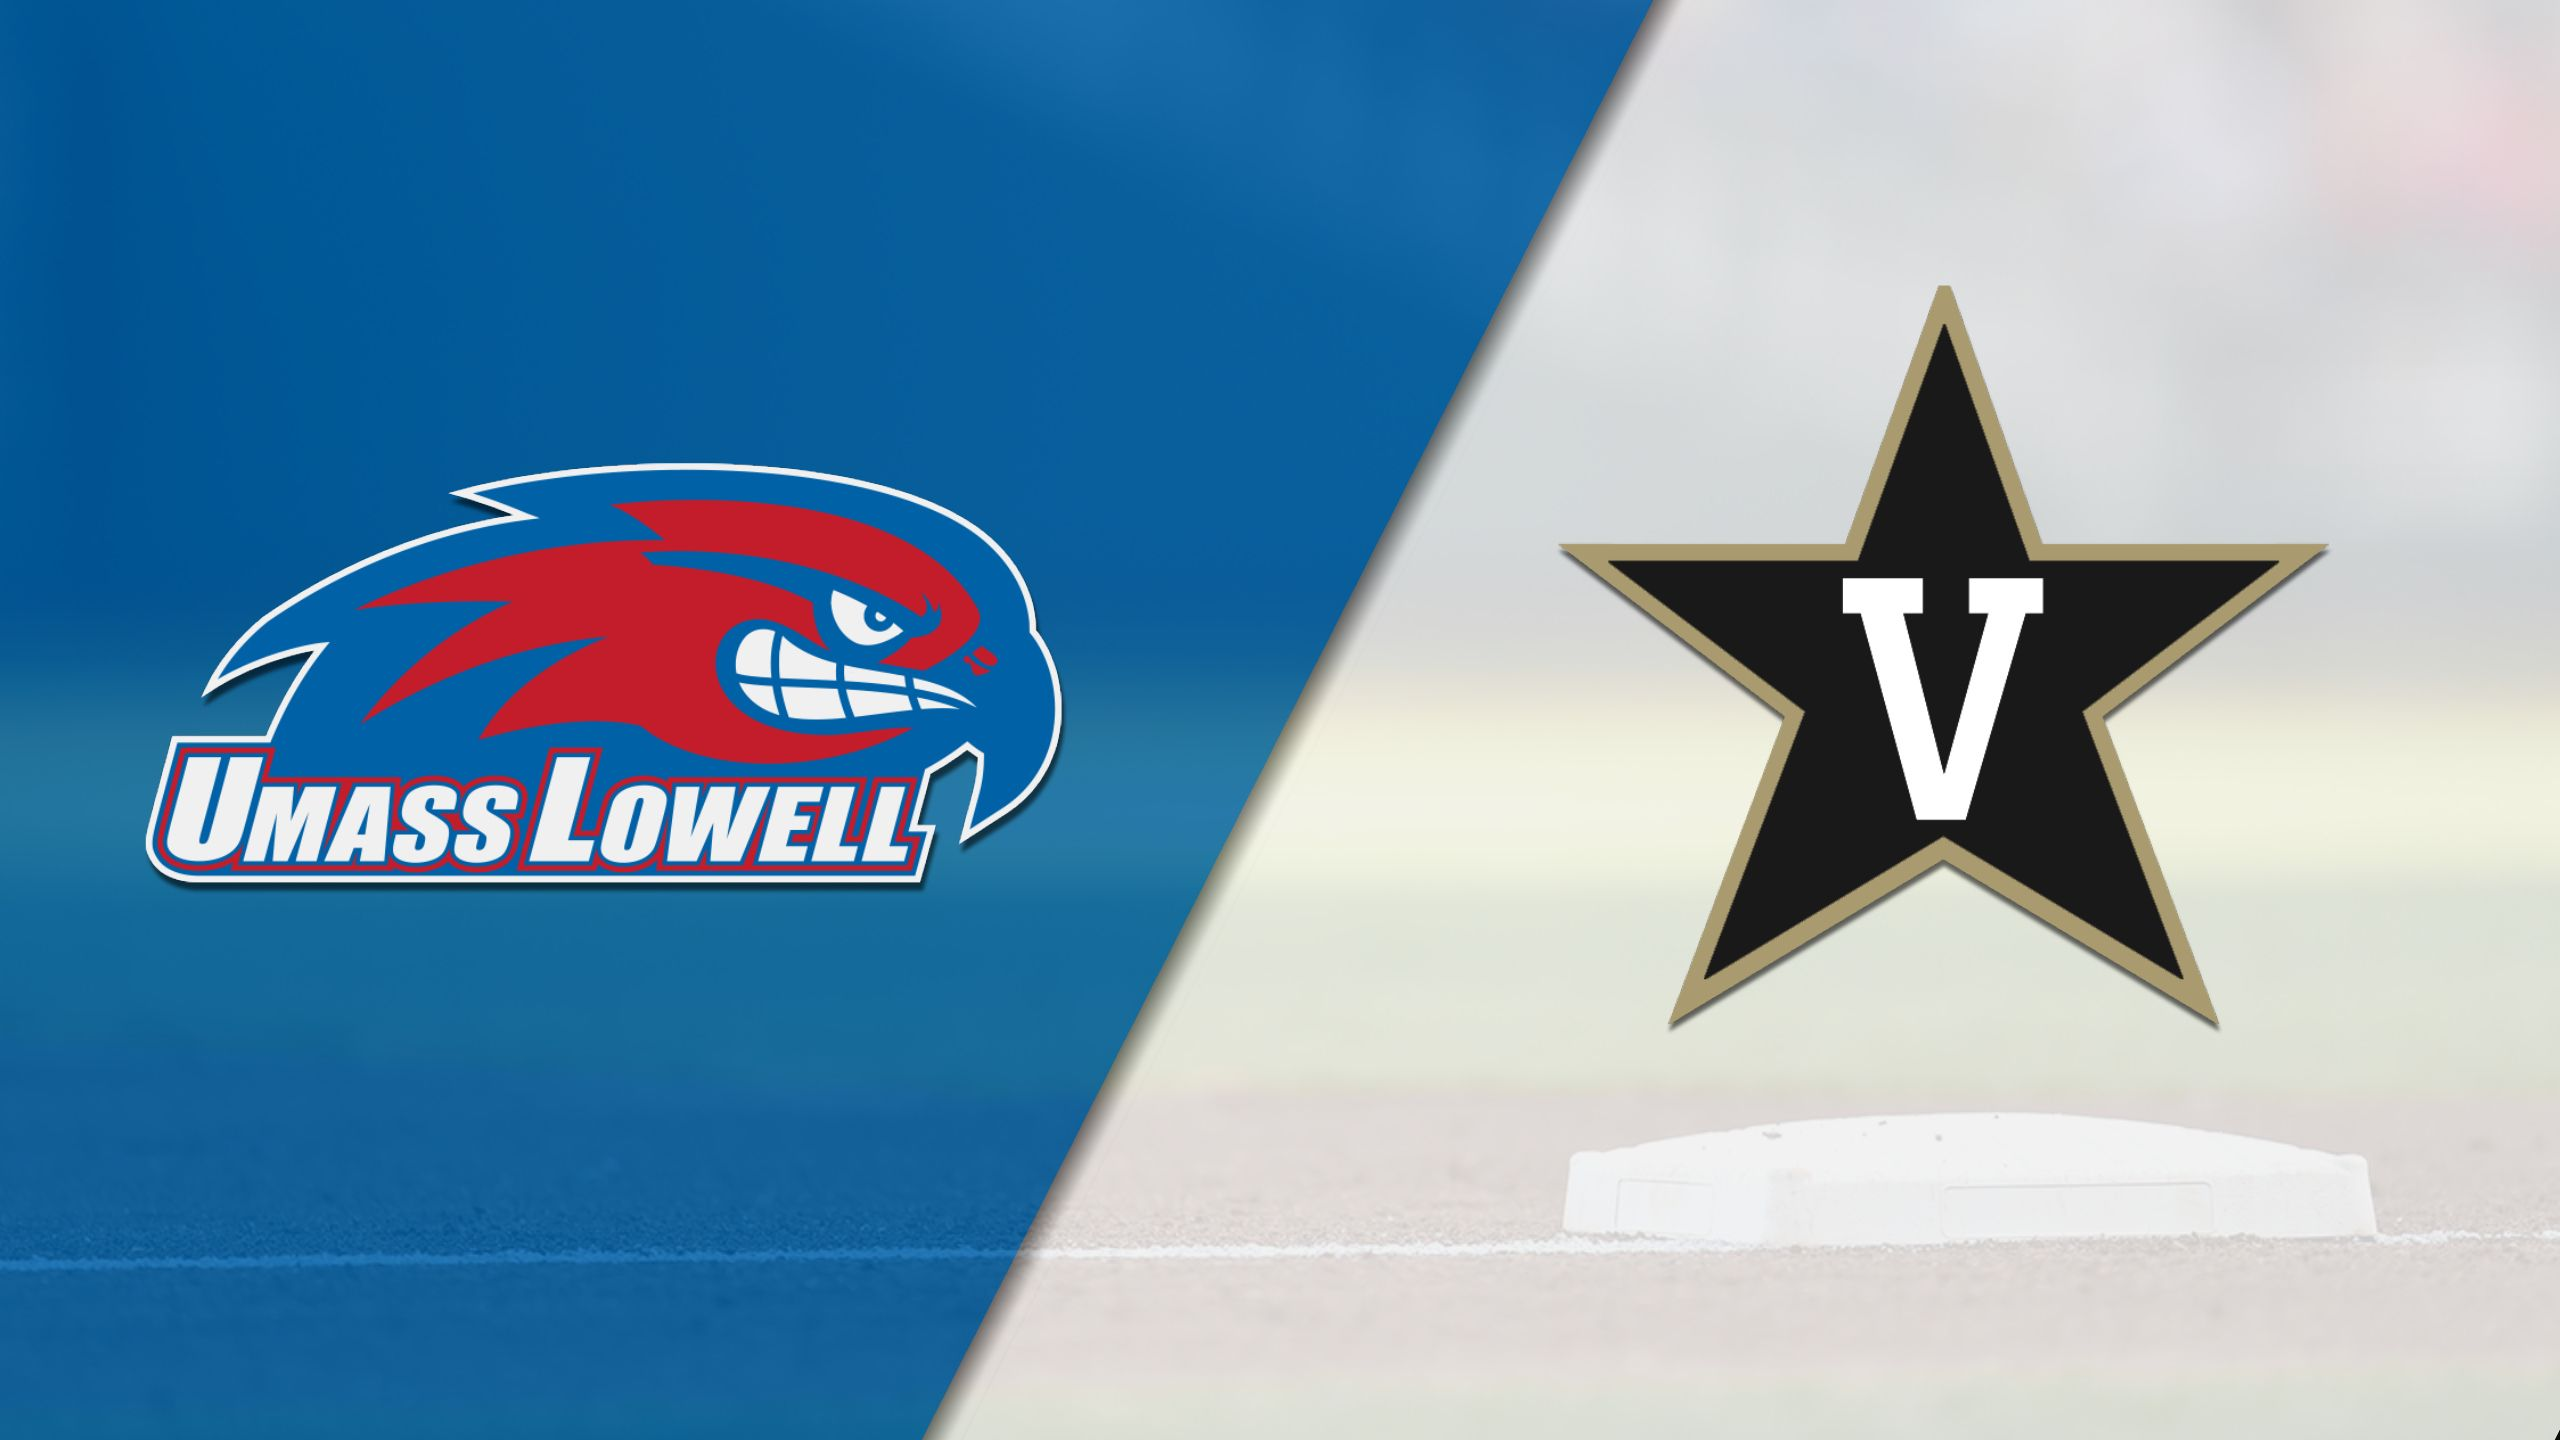 UMass Lowell vs. #10 Vanderbilt (Baseball)